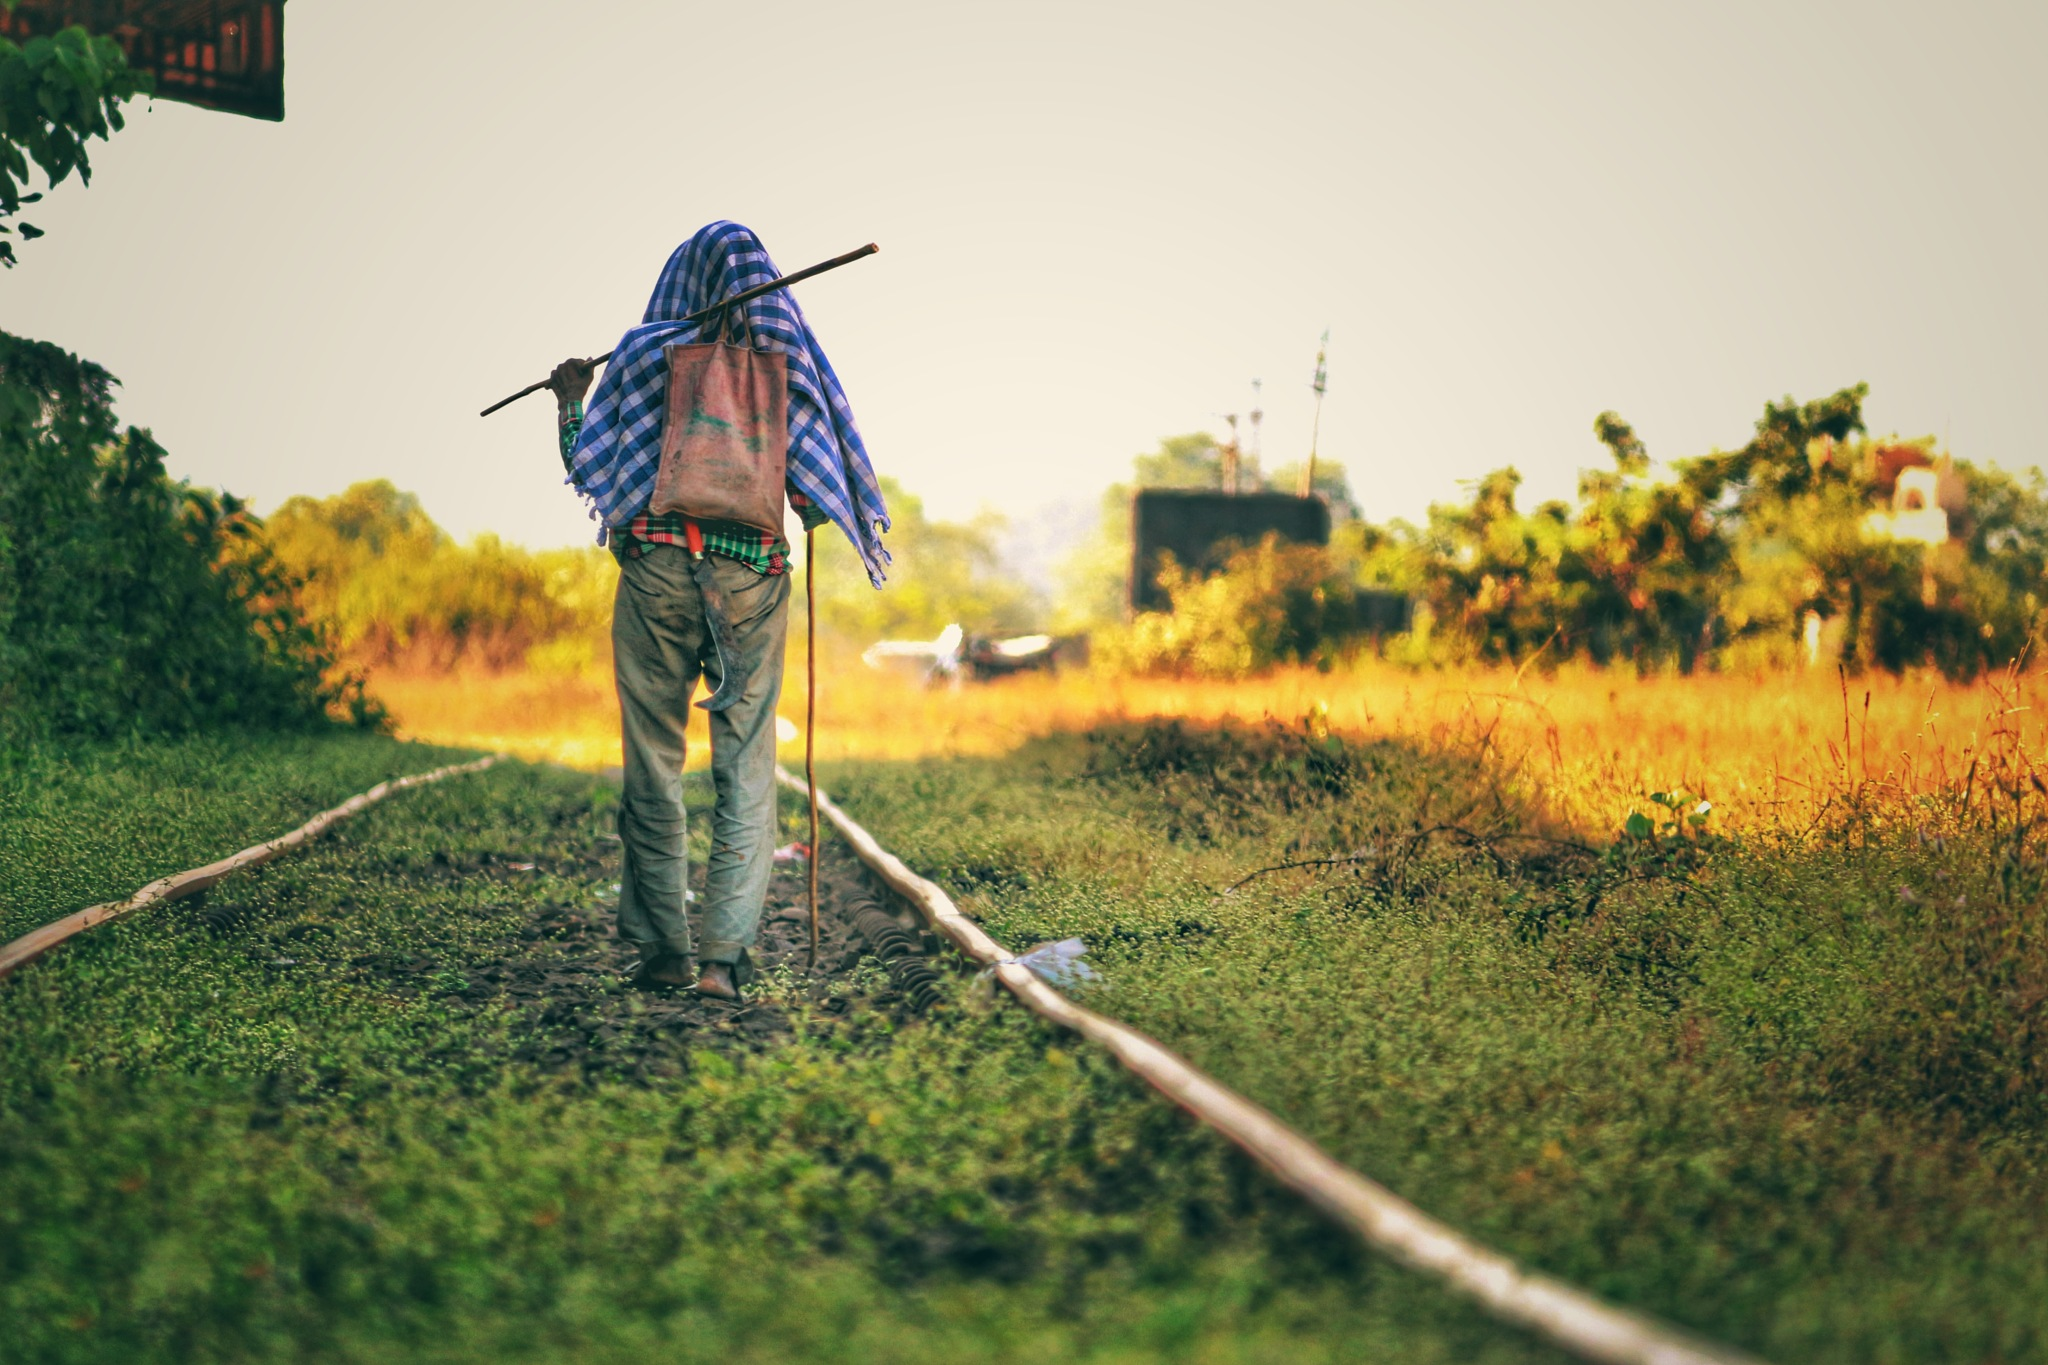 Walking ahed  by Aniket Khariwale